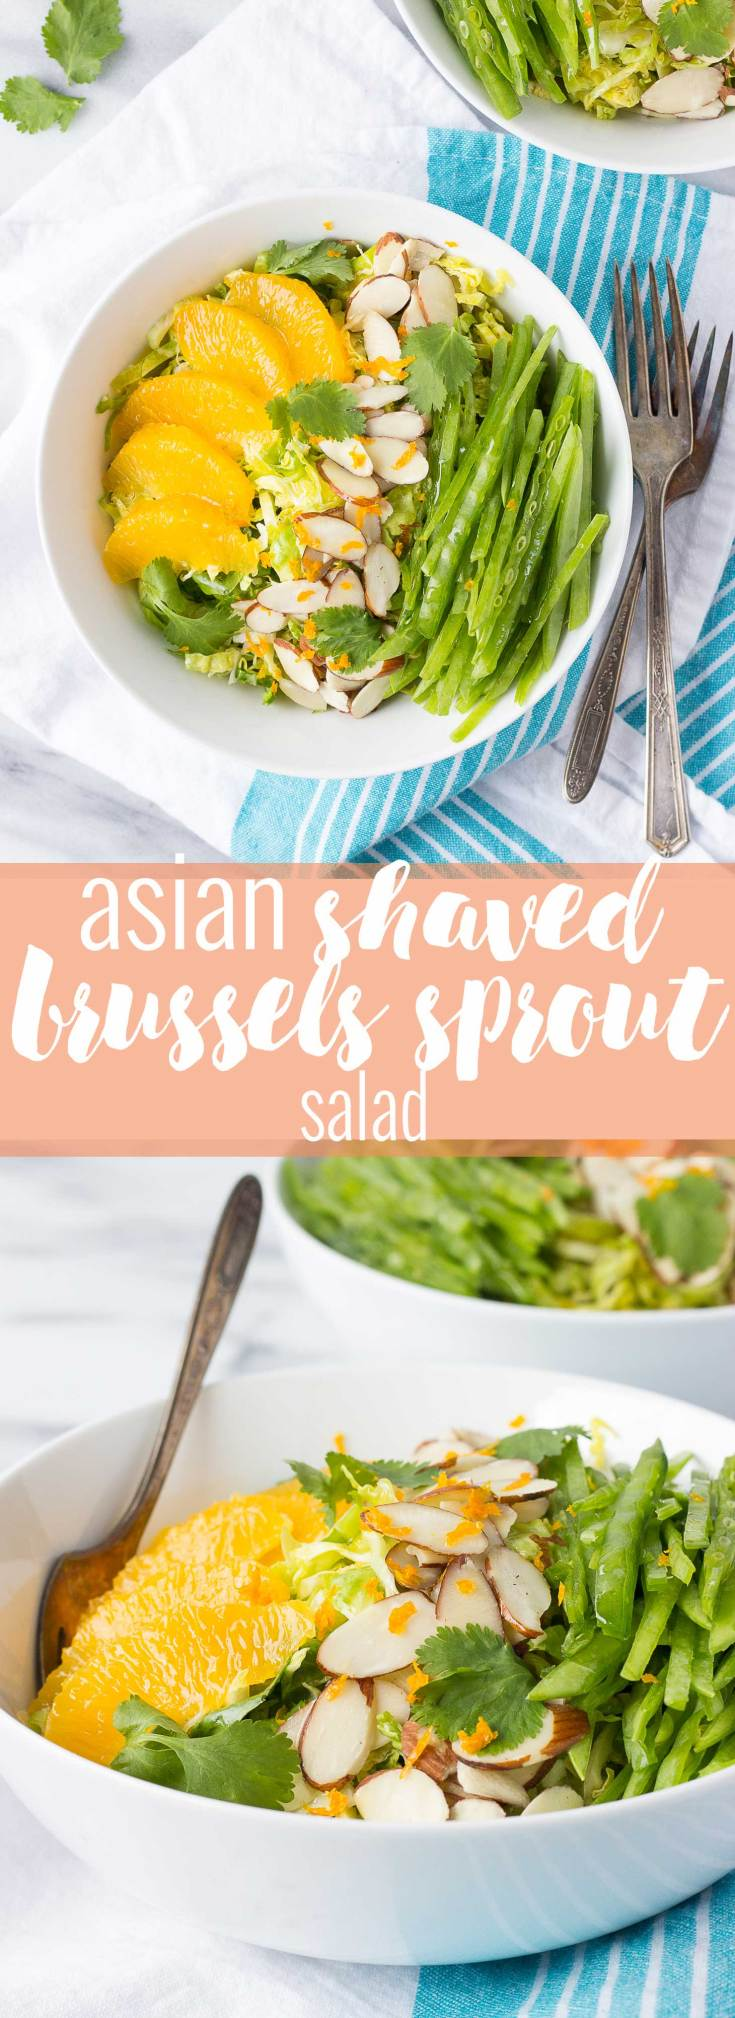 Asian Shaved Brussels Sprout Salad // Fork in the Kitchen